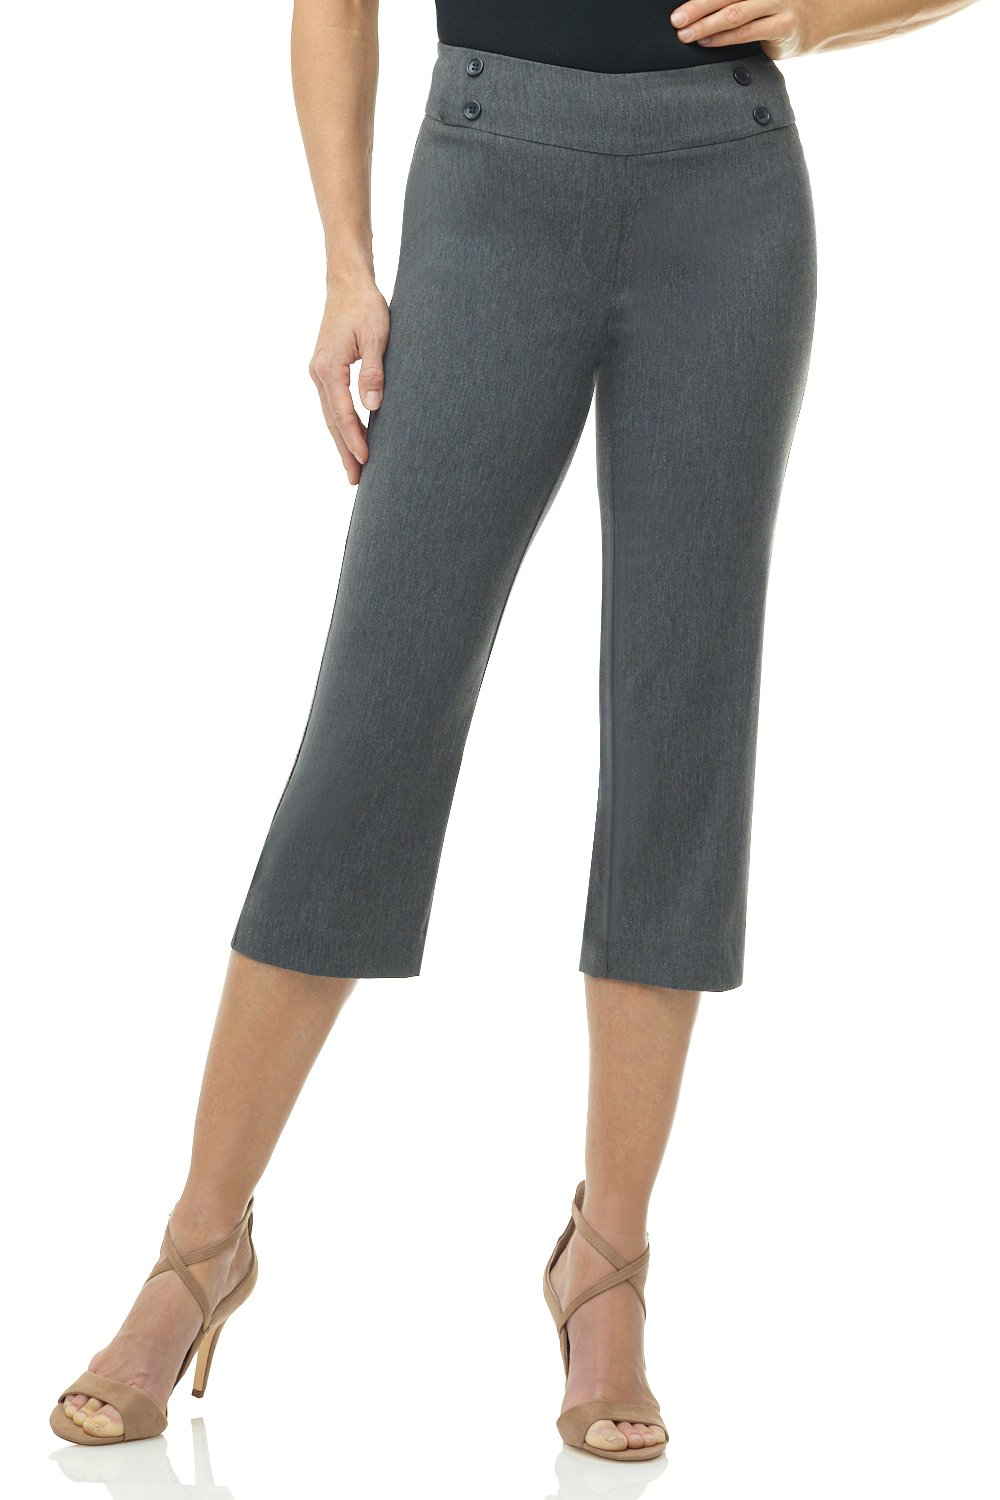 Rekucci Women's Ease in to Comfort Fit Capri with Button Detail (4,Charcoal)